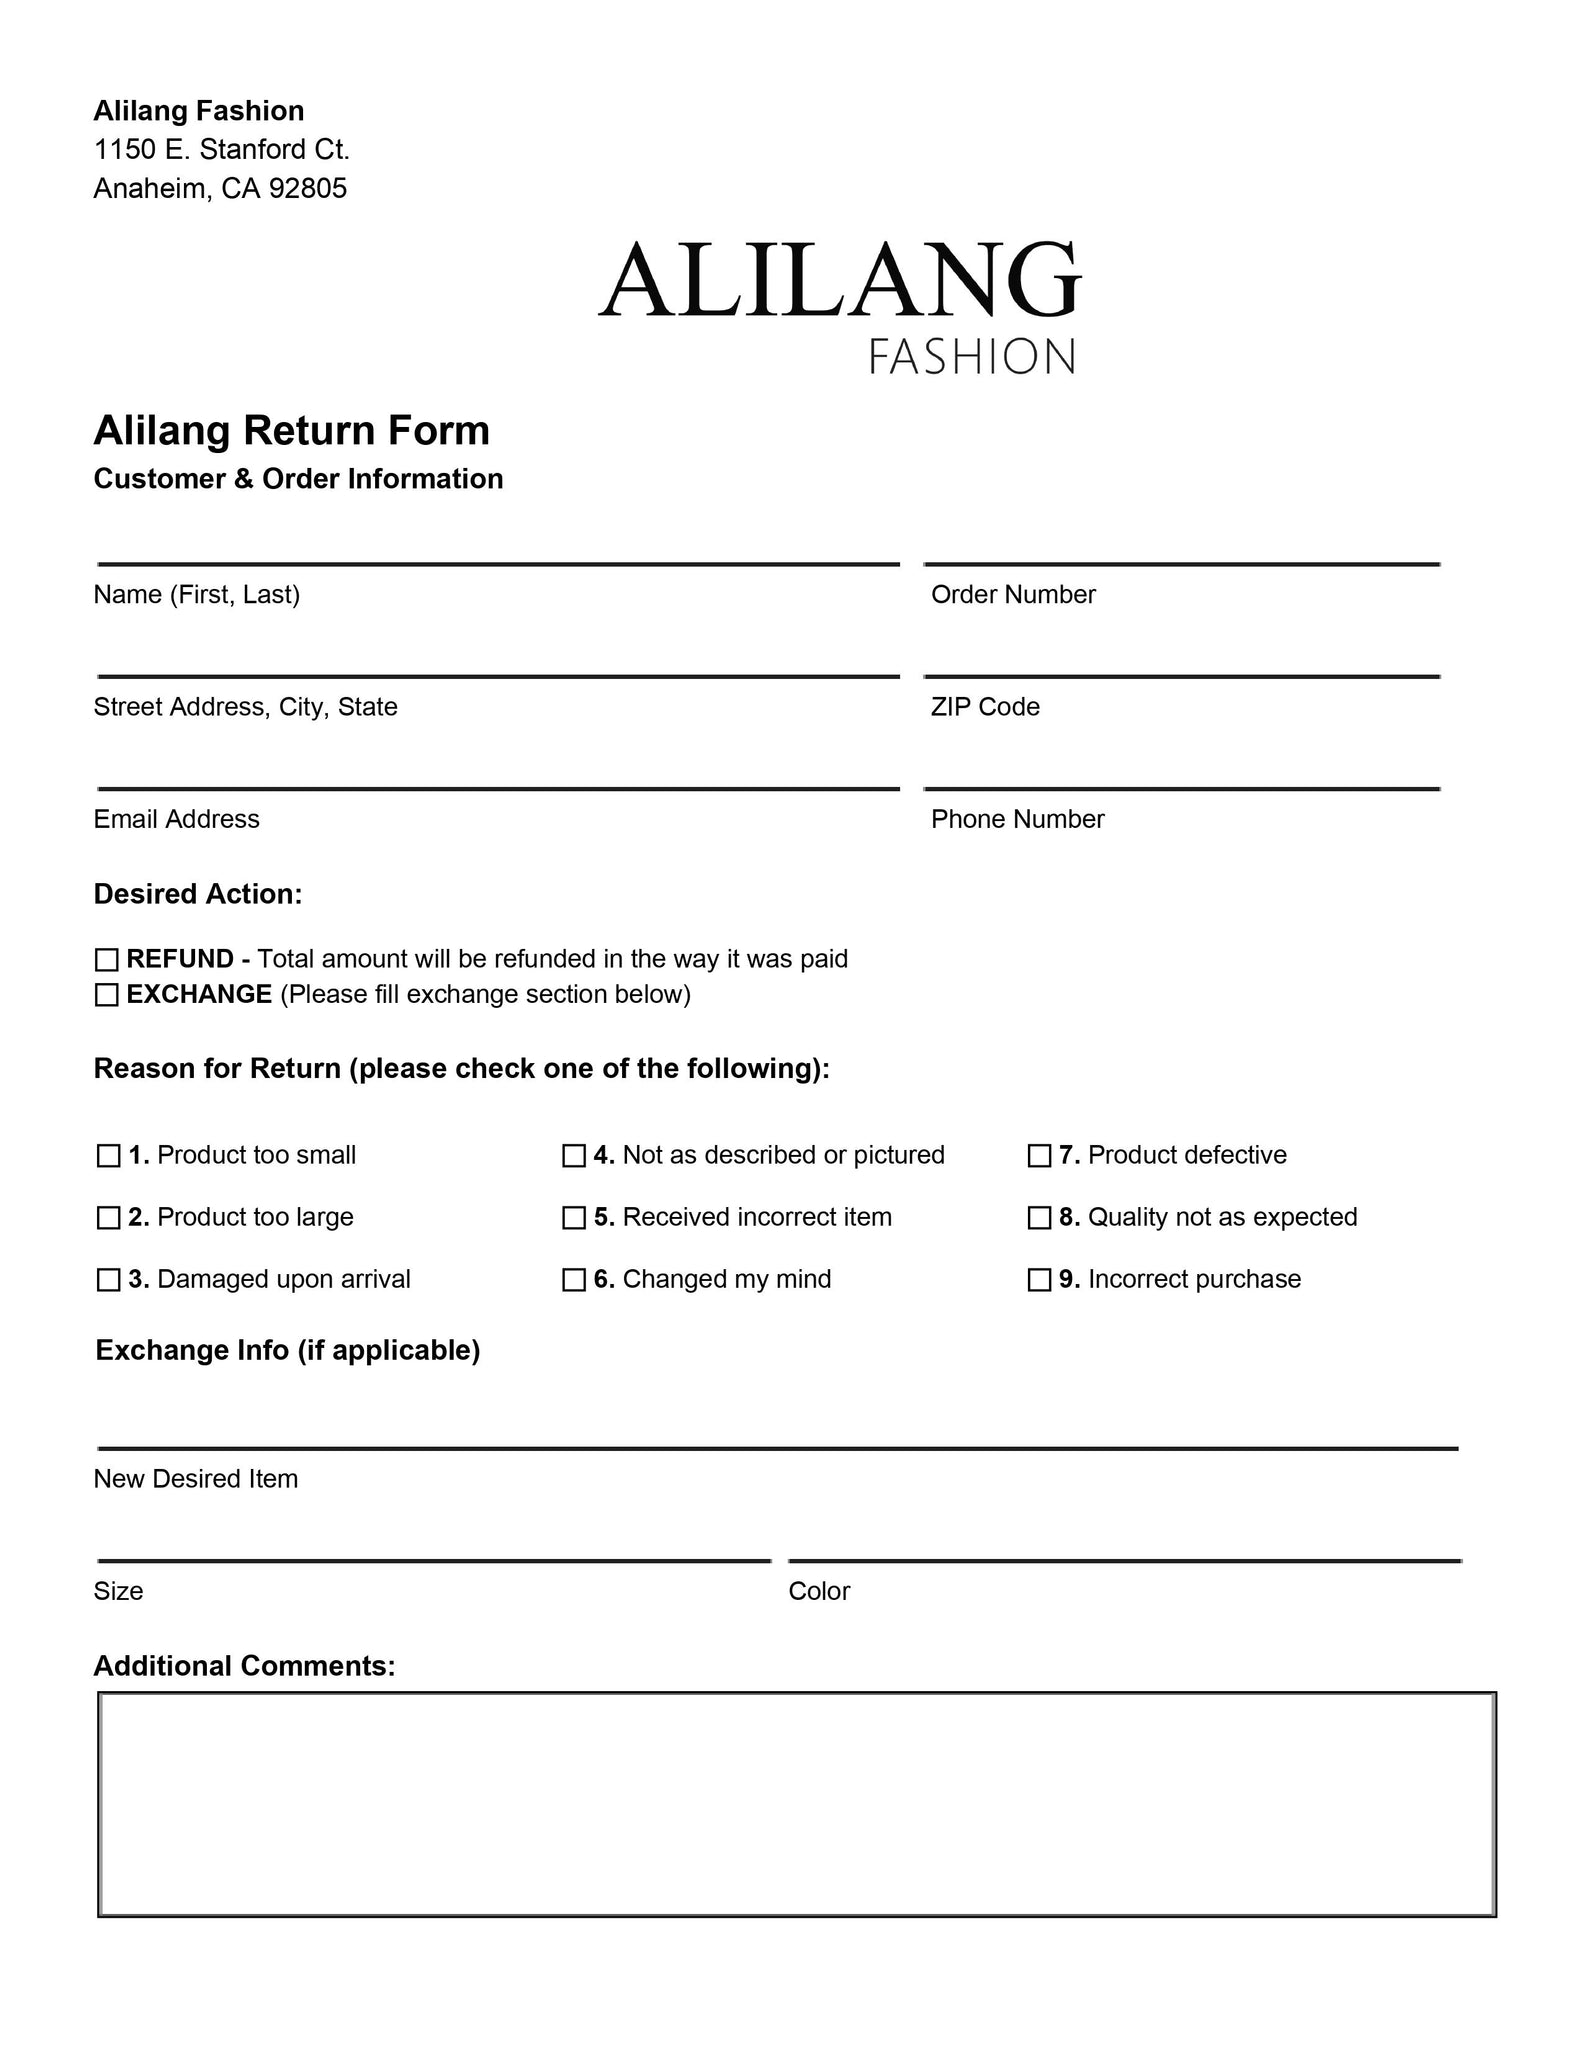 Alilang Return Form